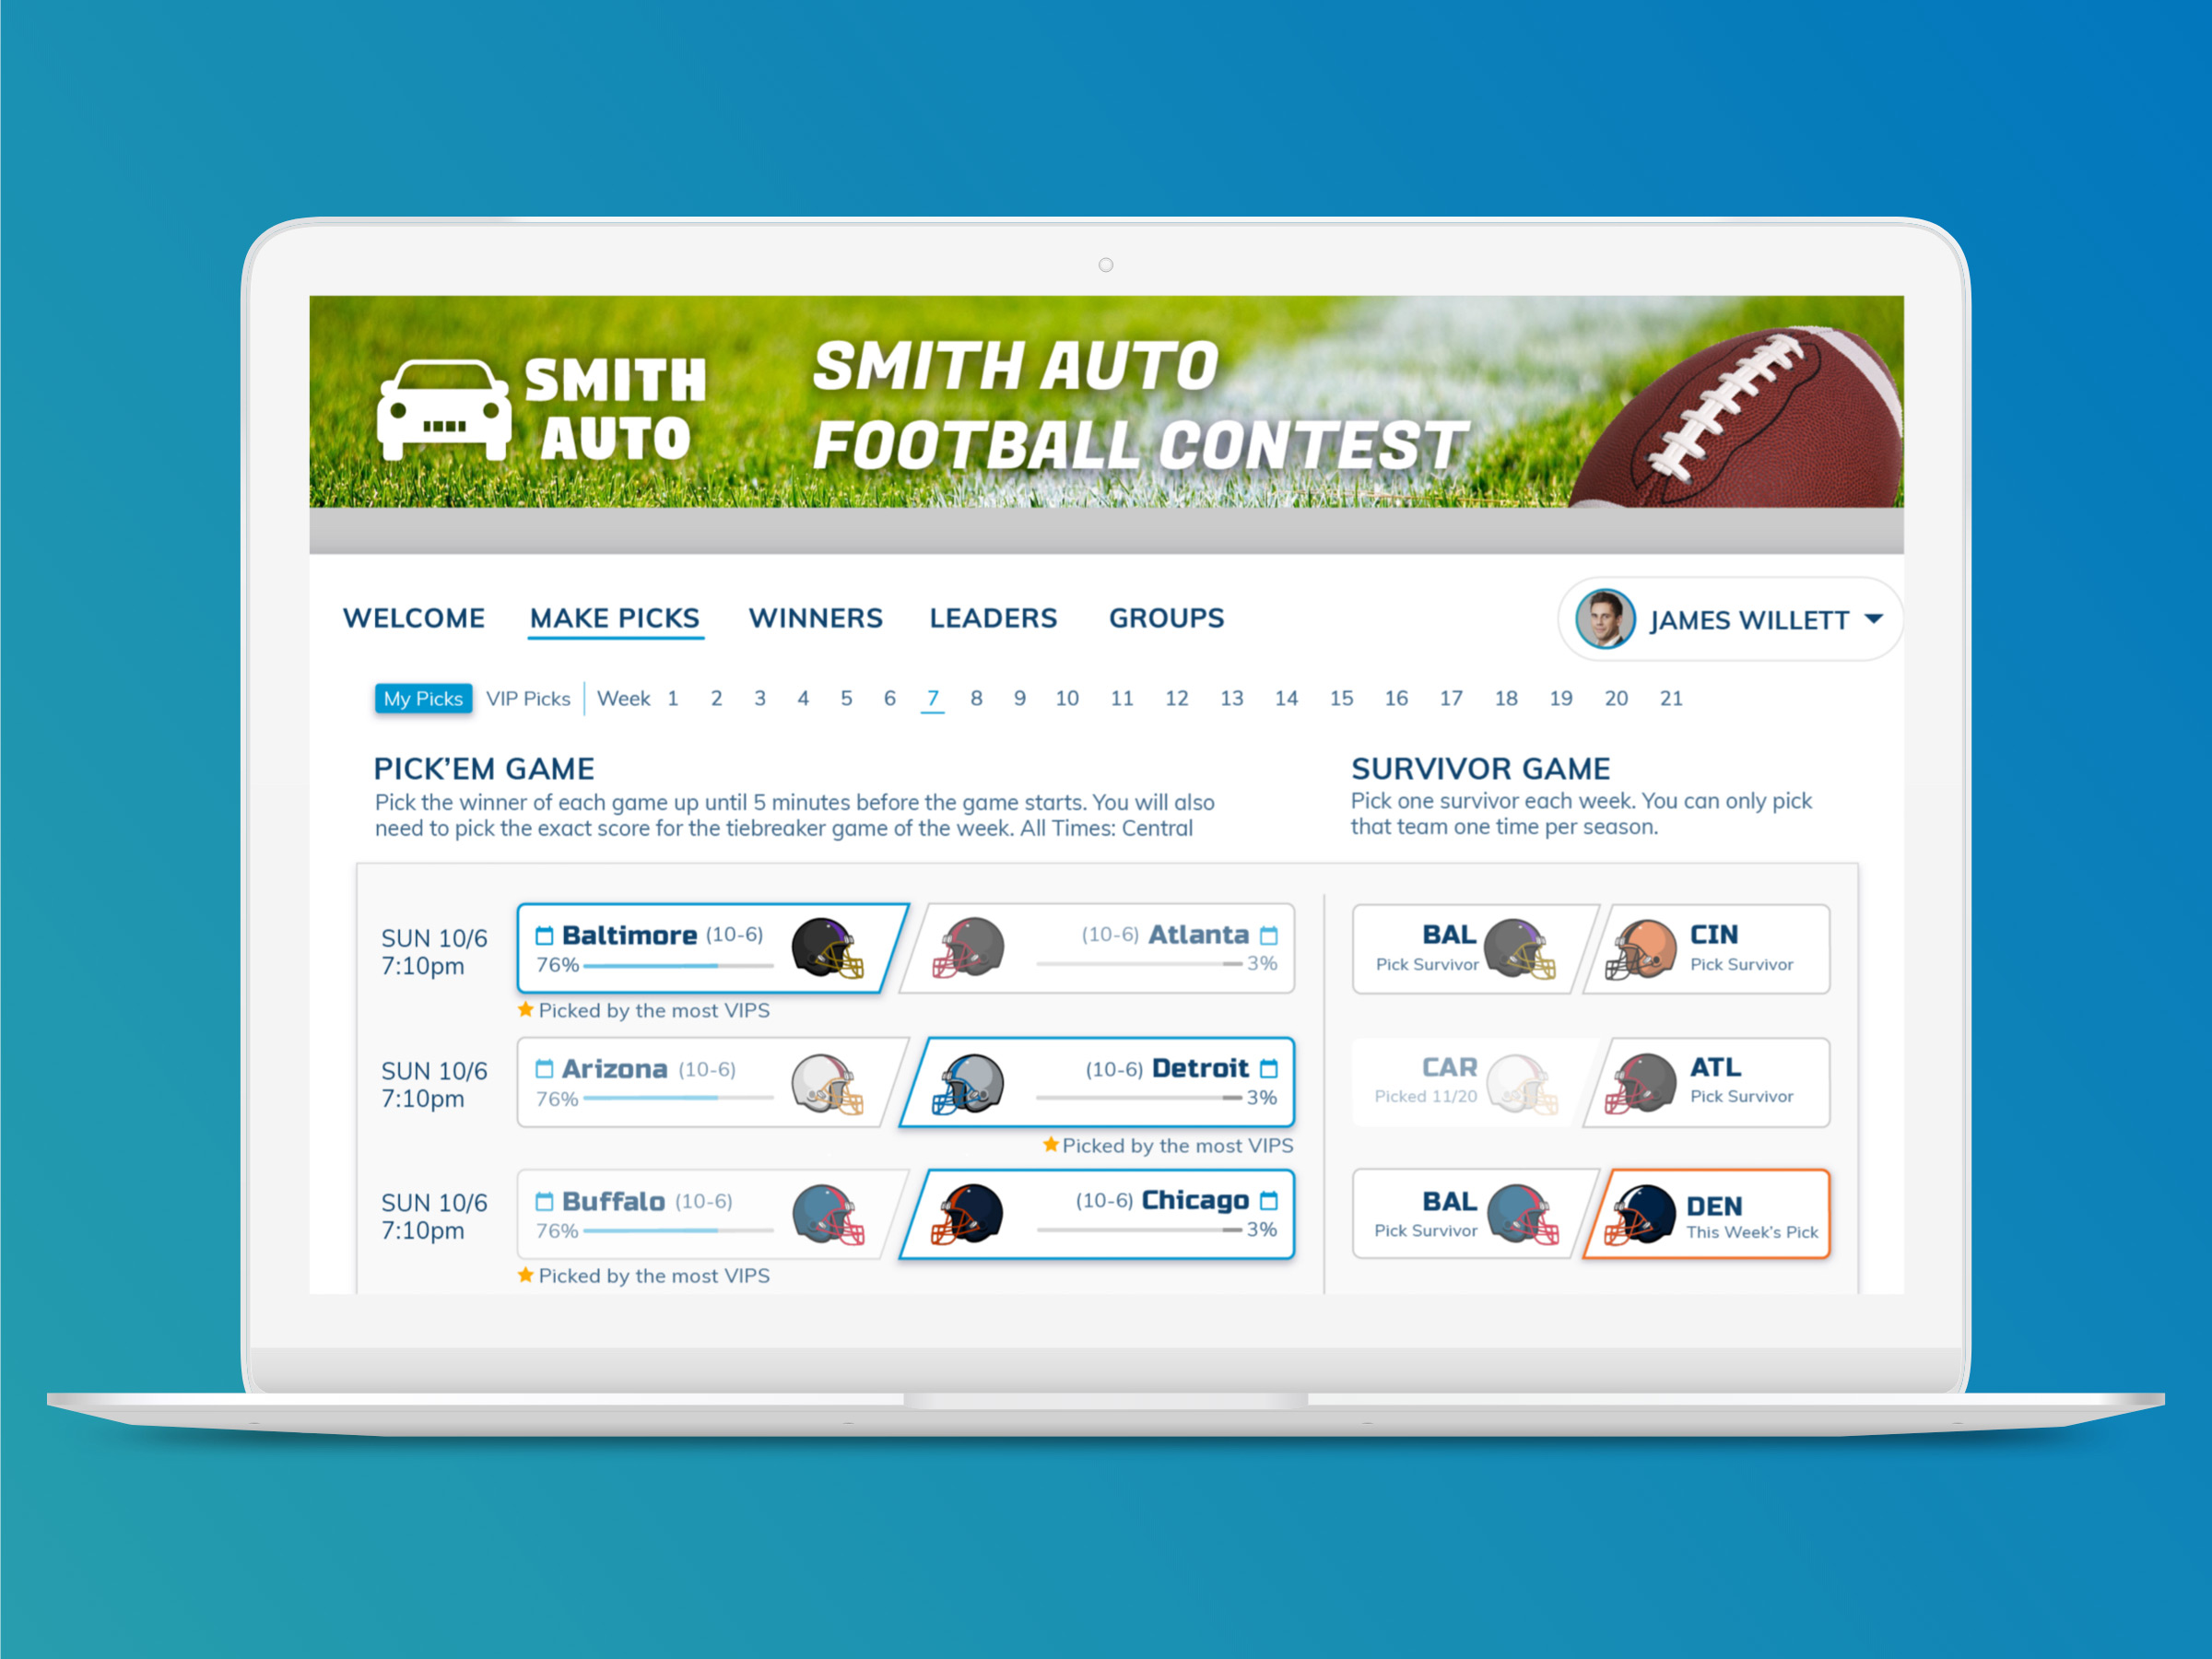 Pro football pick'em sponsored by an auto dealership.